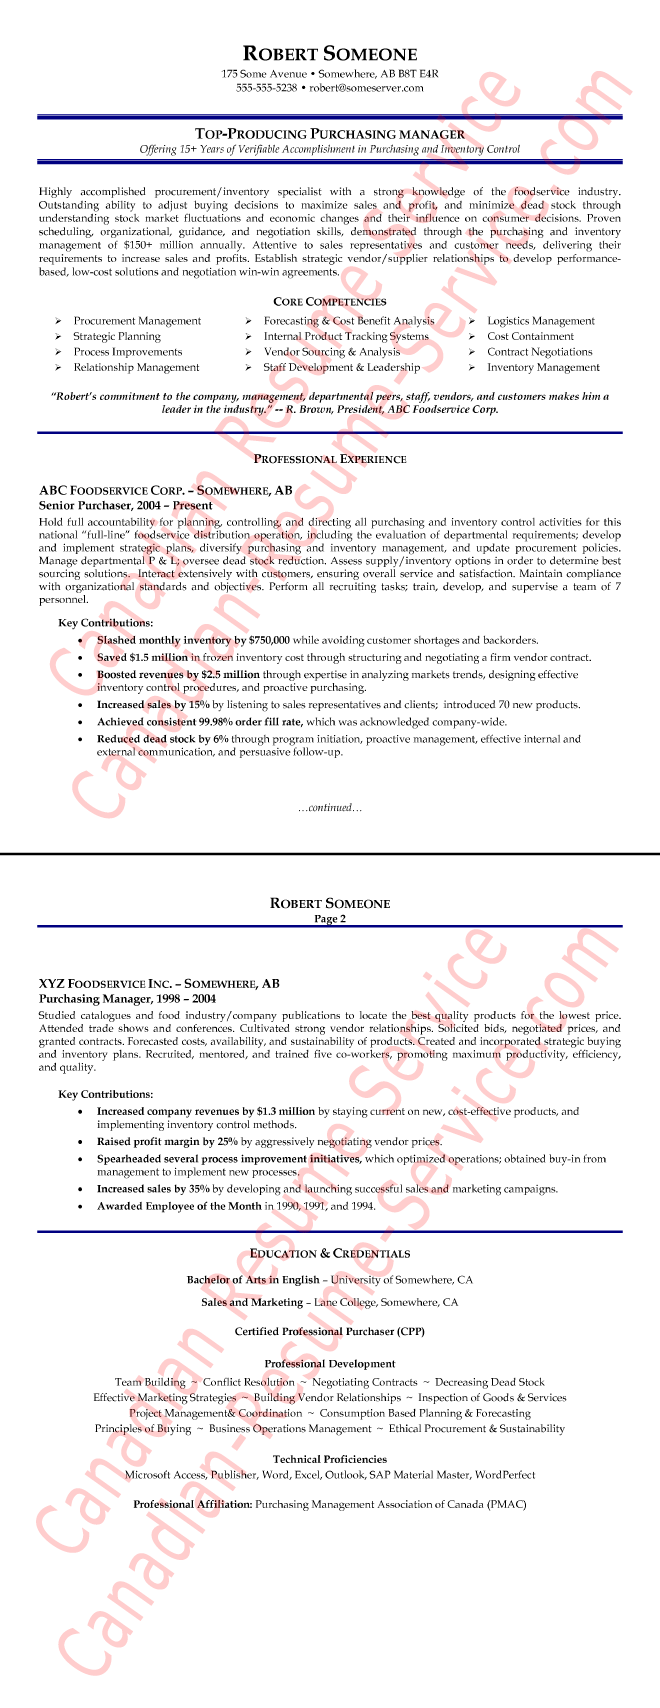 Purchasing Manager Resume Example U2013 Procurement Executive Sample  Inventory Management Resume